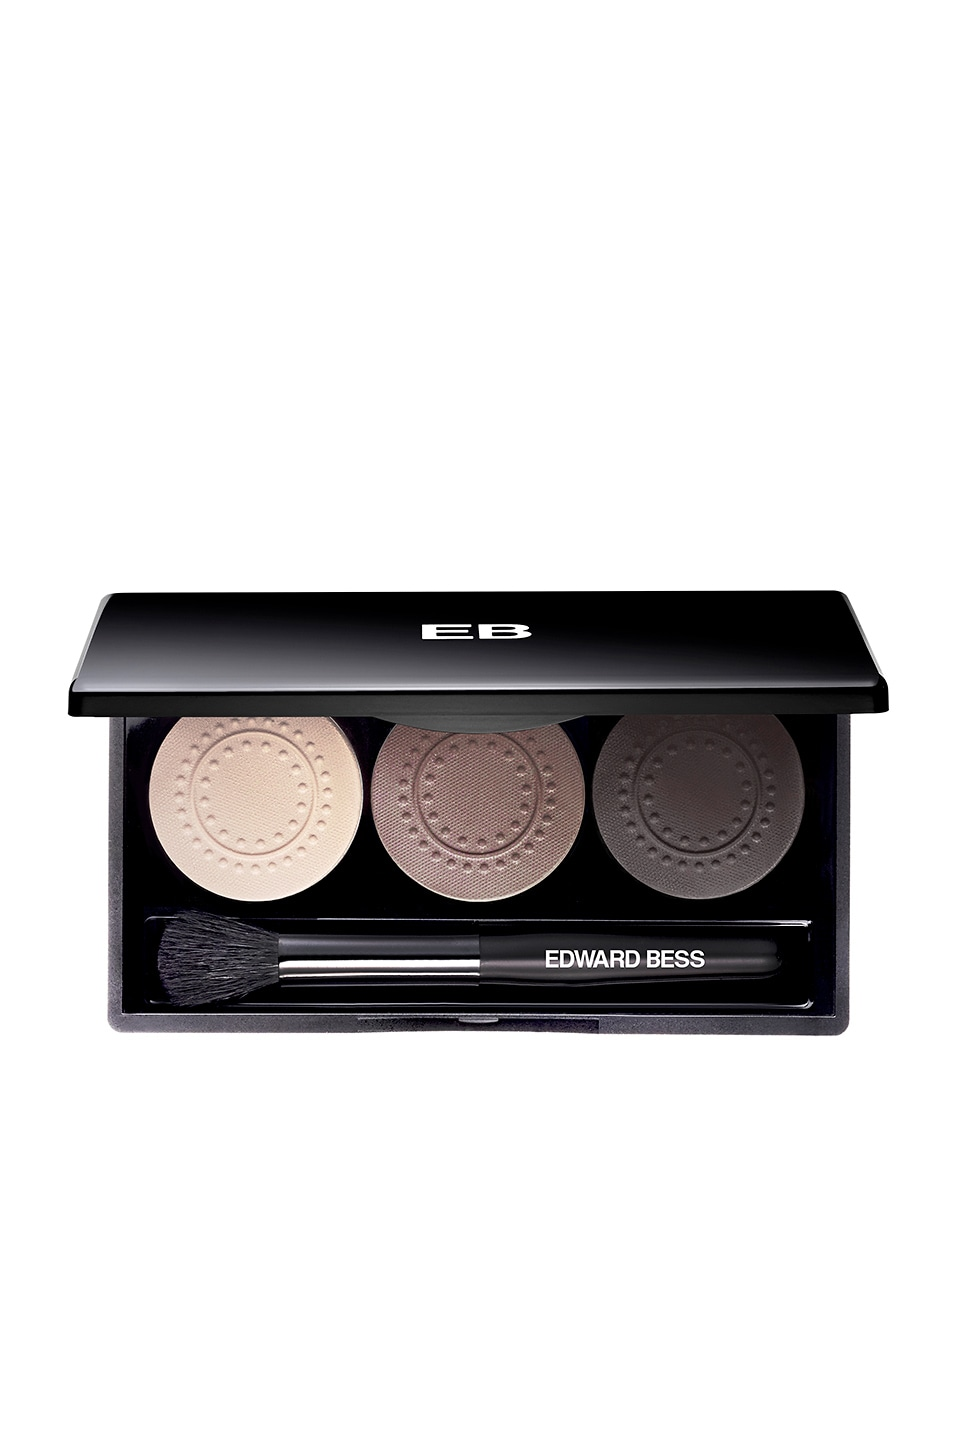 Edward Bess Expert Edit Eyeshadow Trio in Cocoa Sublime